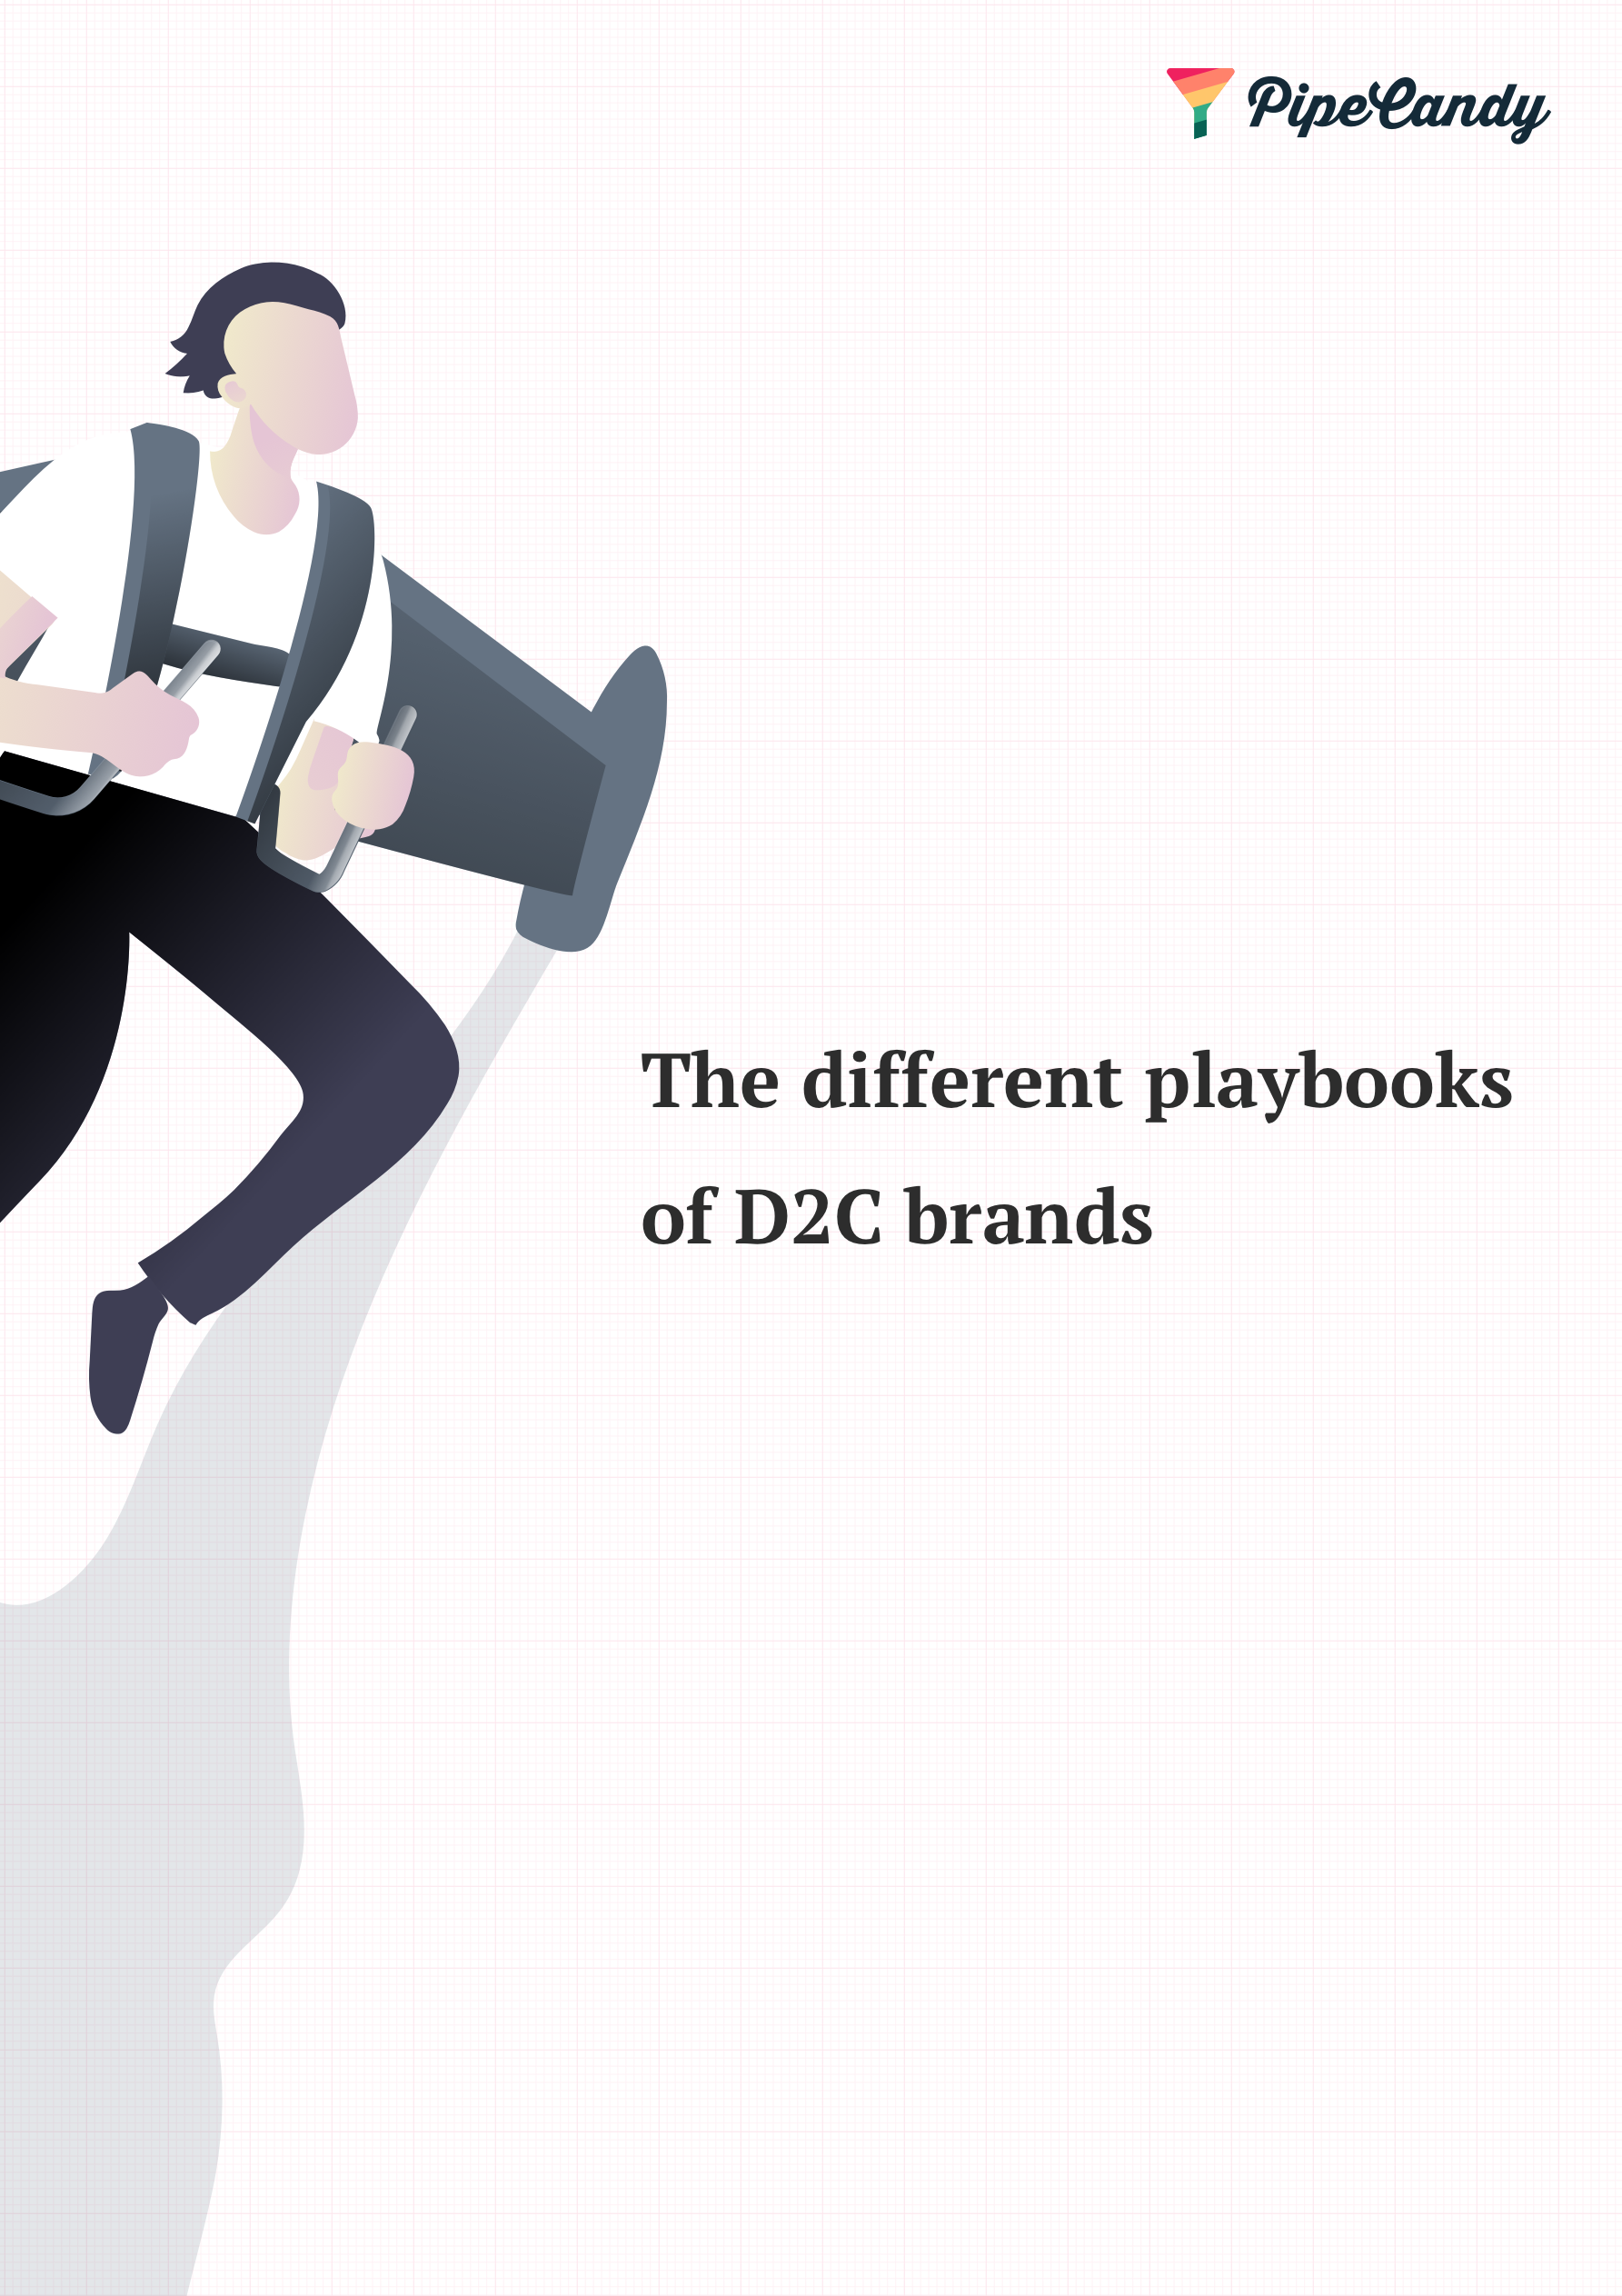 The Different Playbooks of D2C Brands